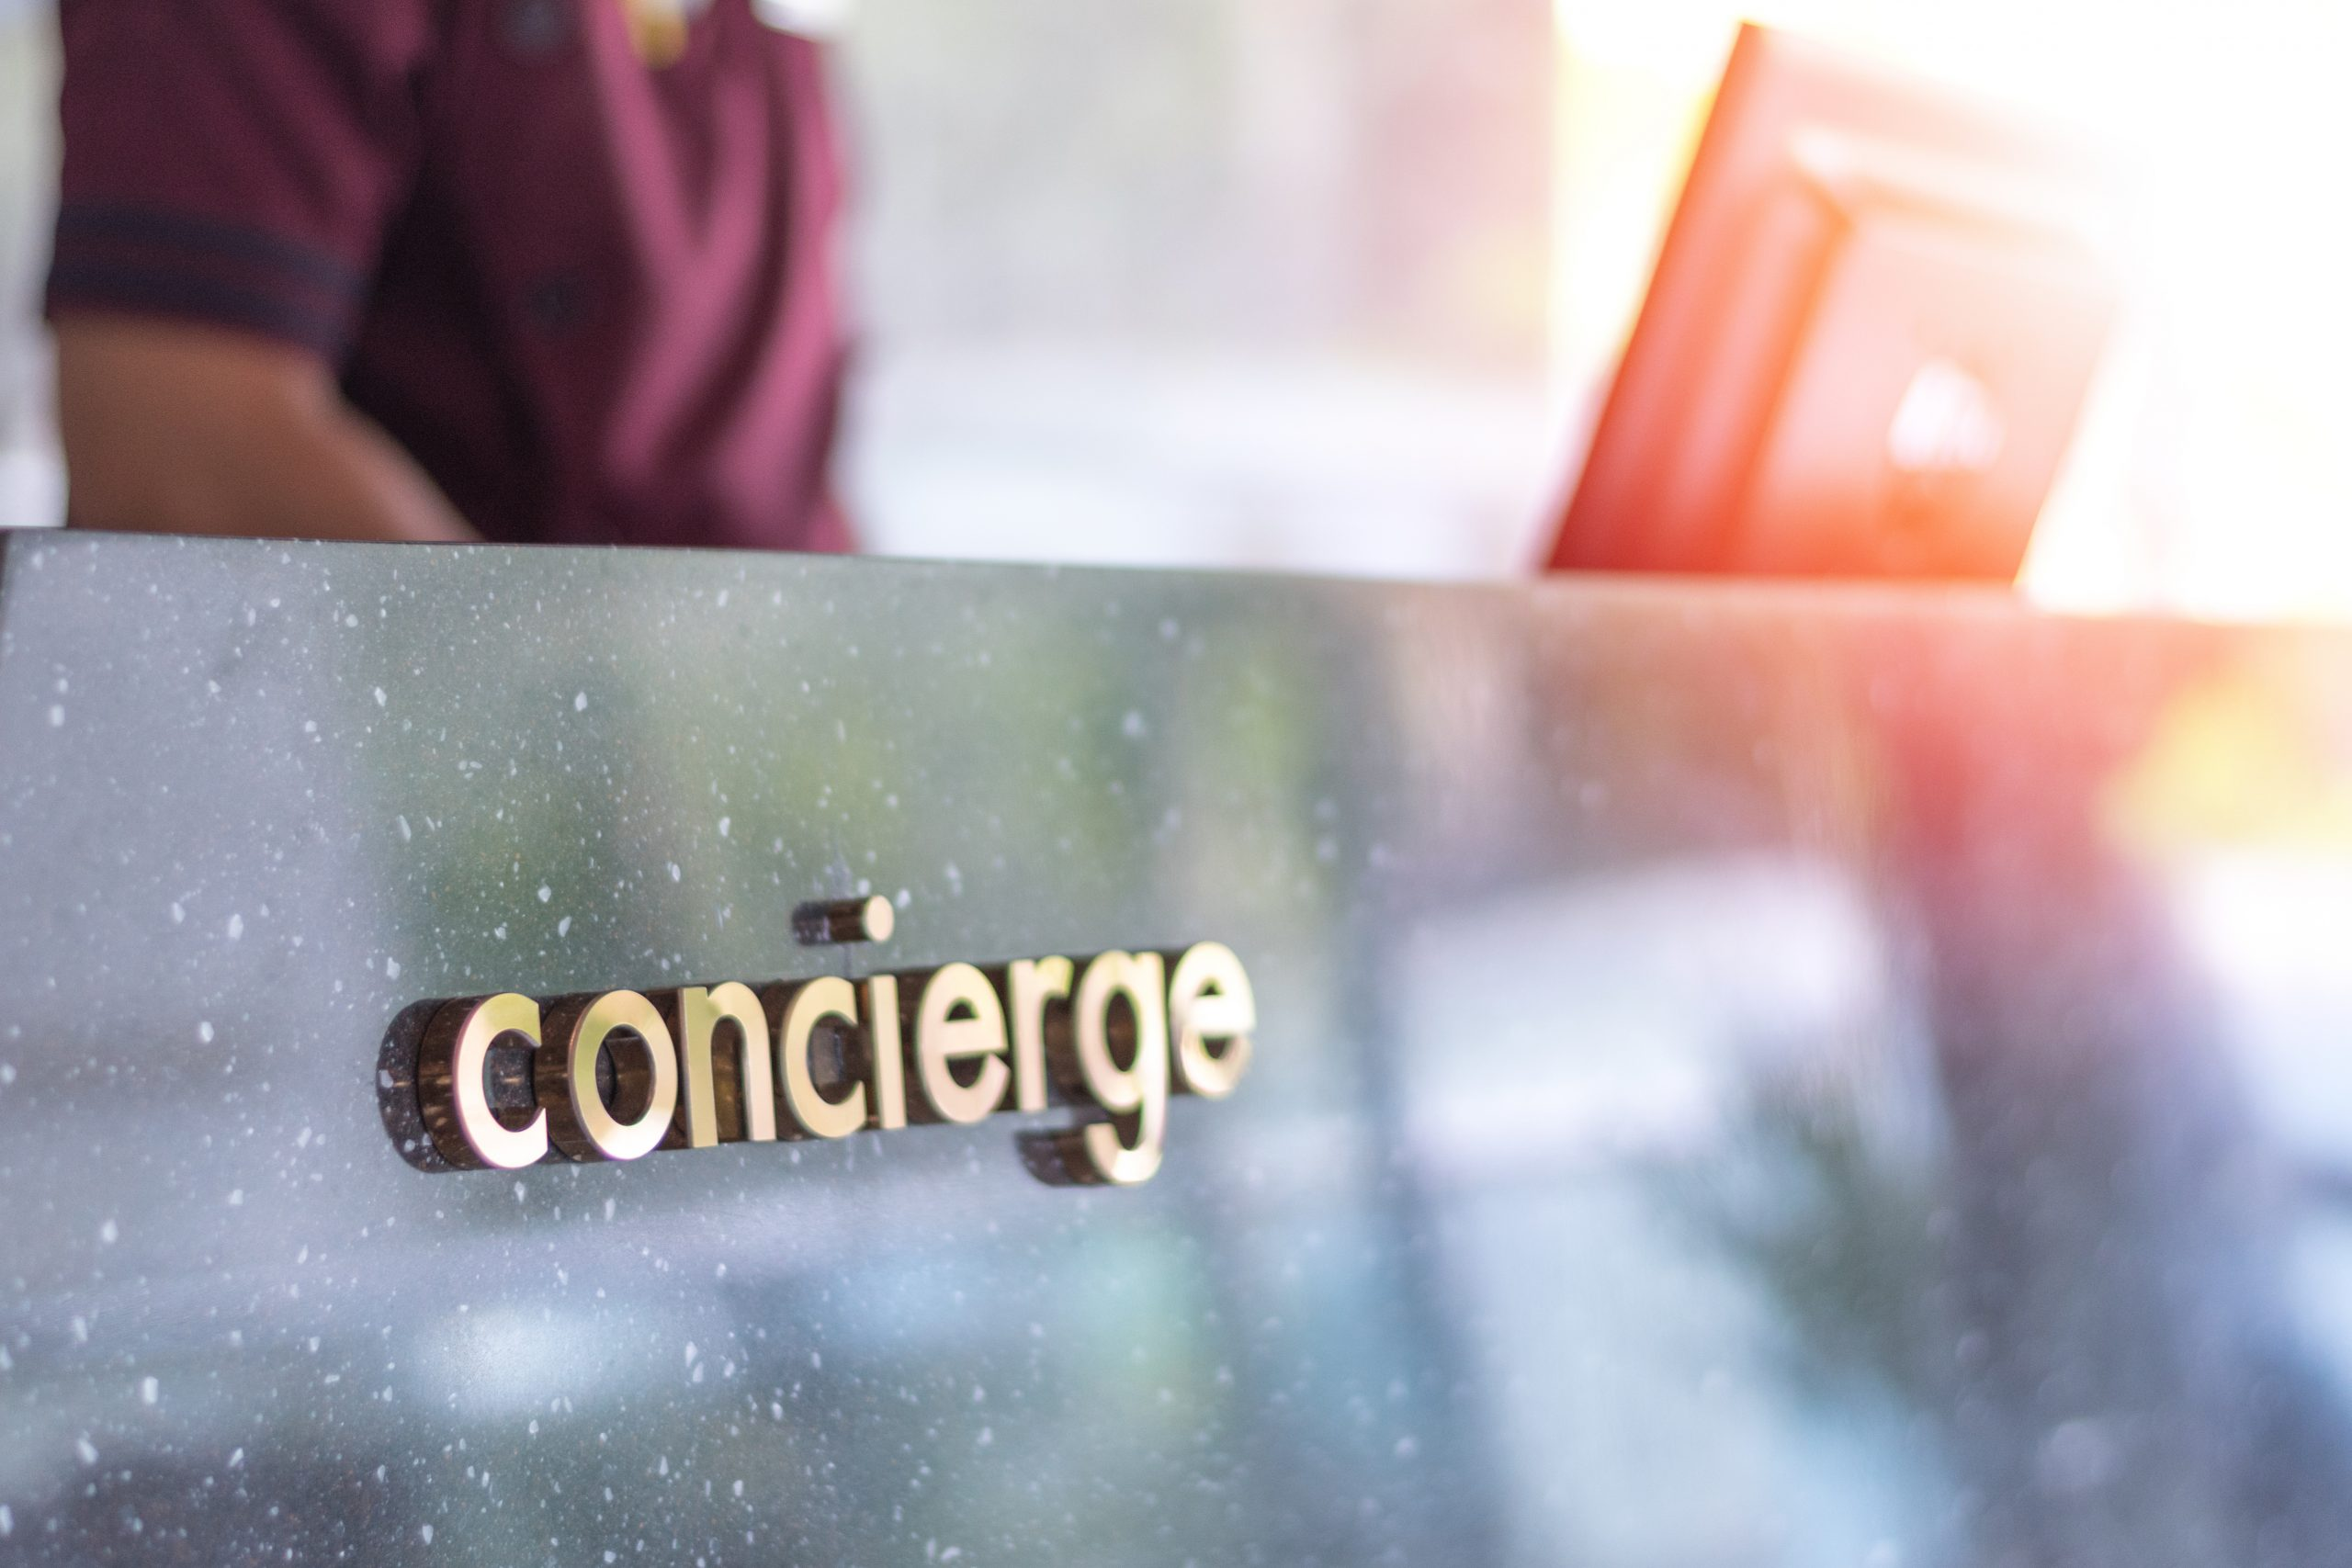 Concierge,Service,Desk,Counter,With,Staff,Team,Working,In,Front